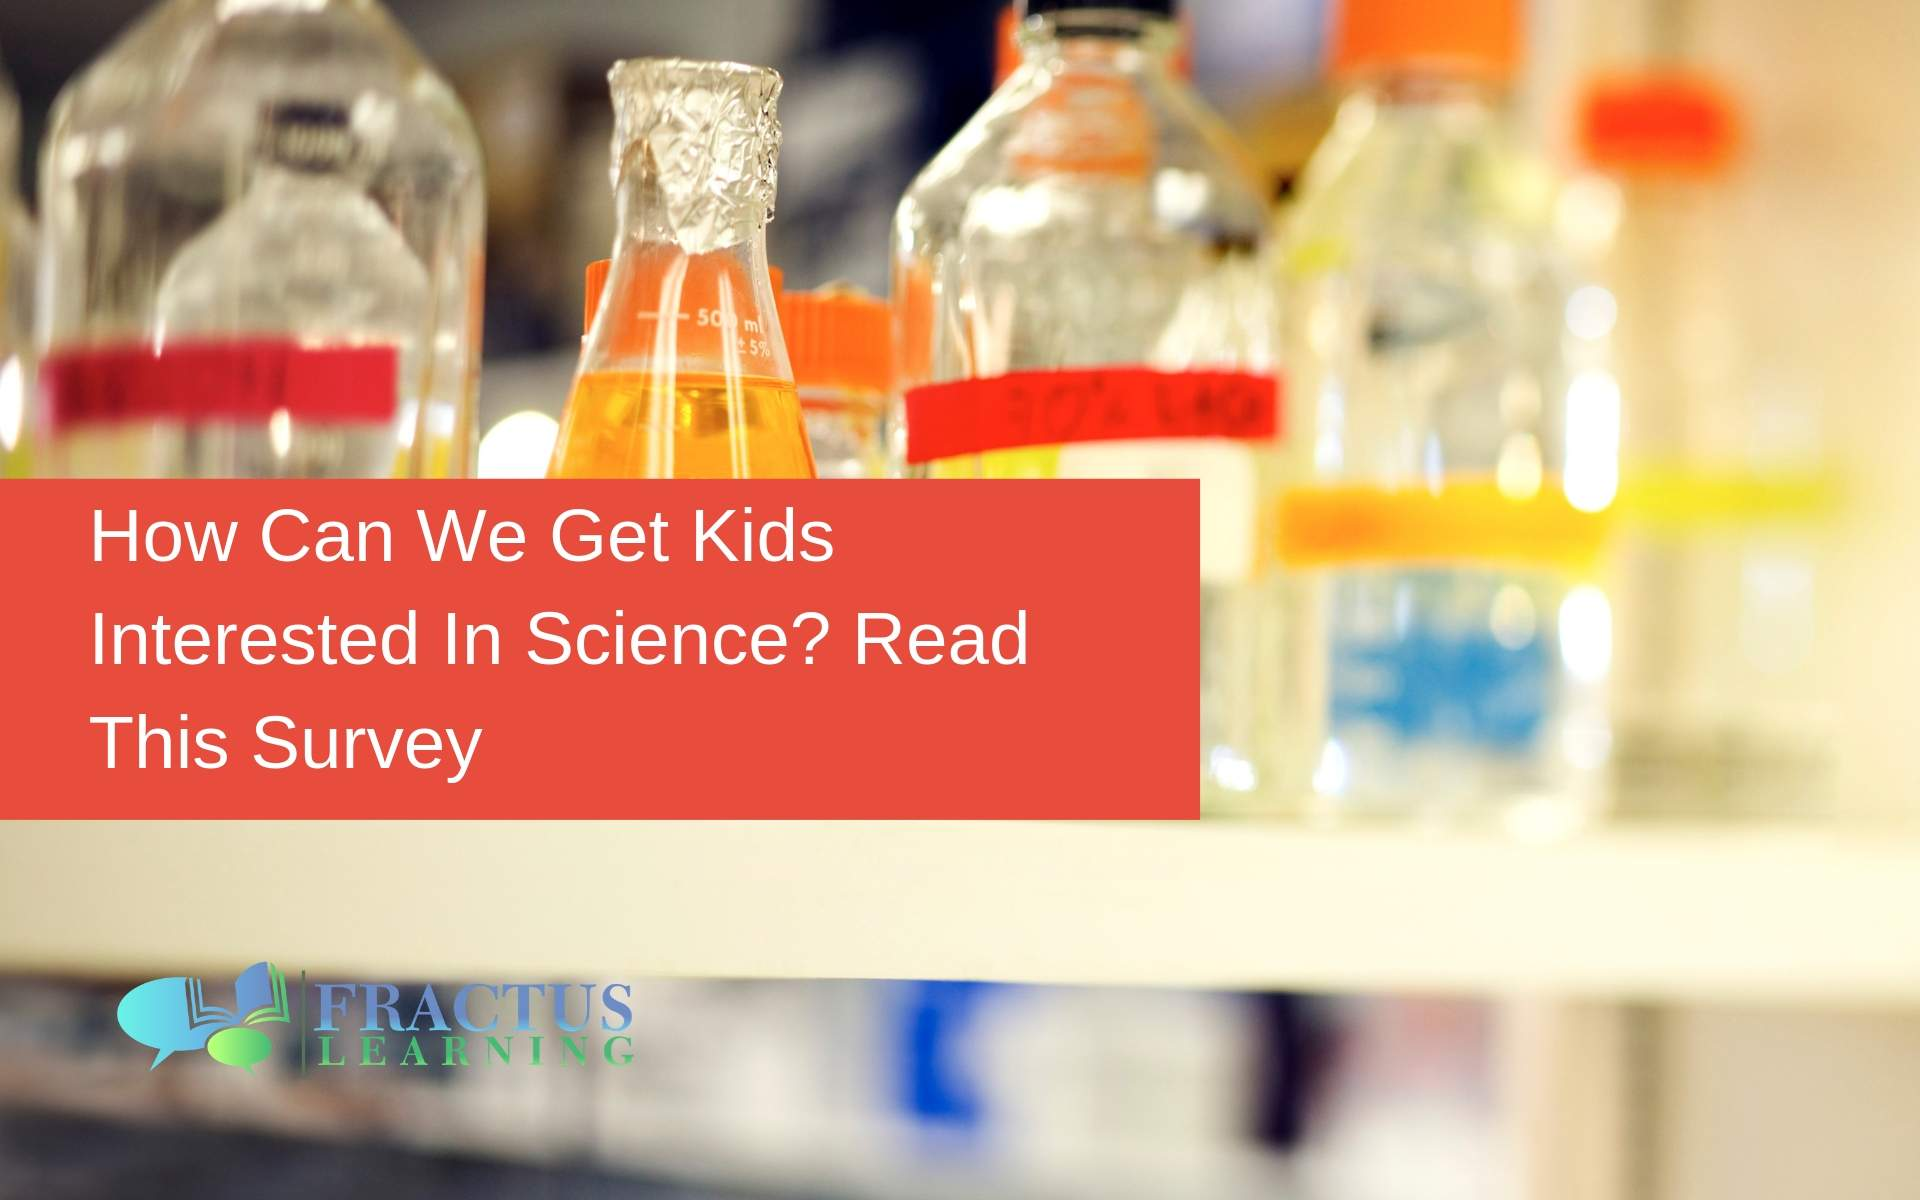 Check out these science survey results